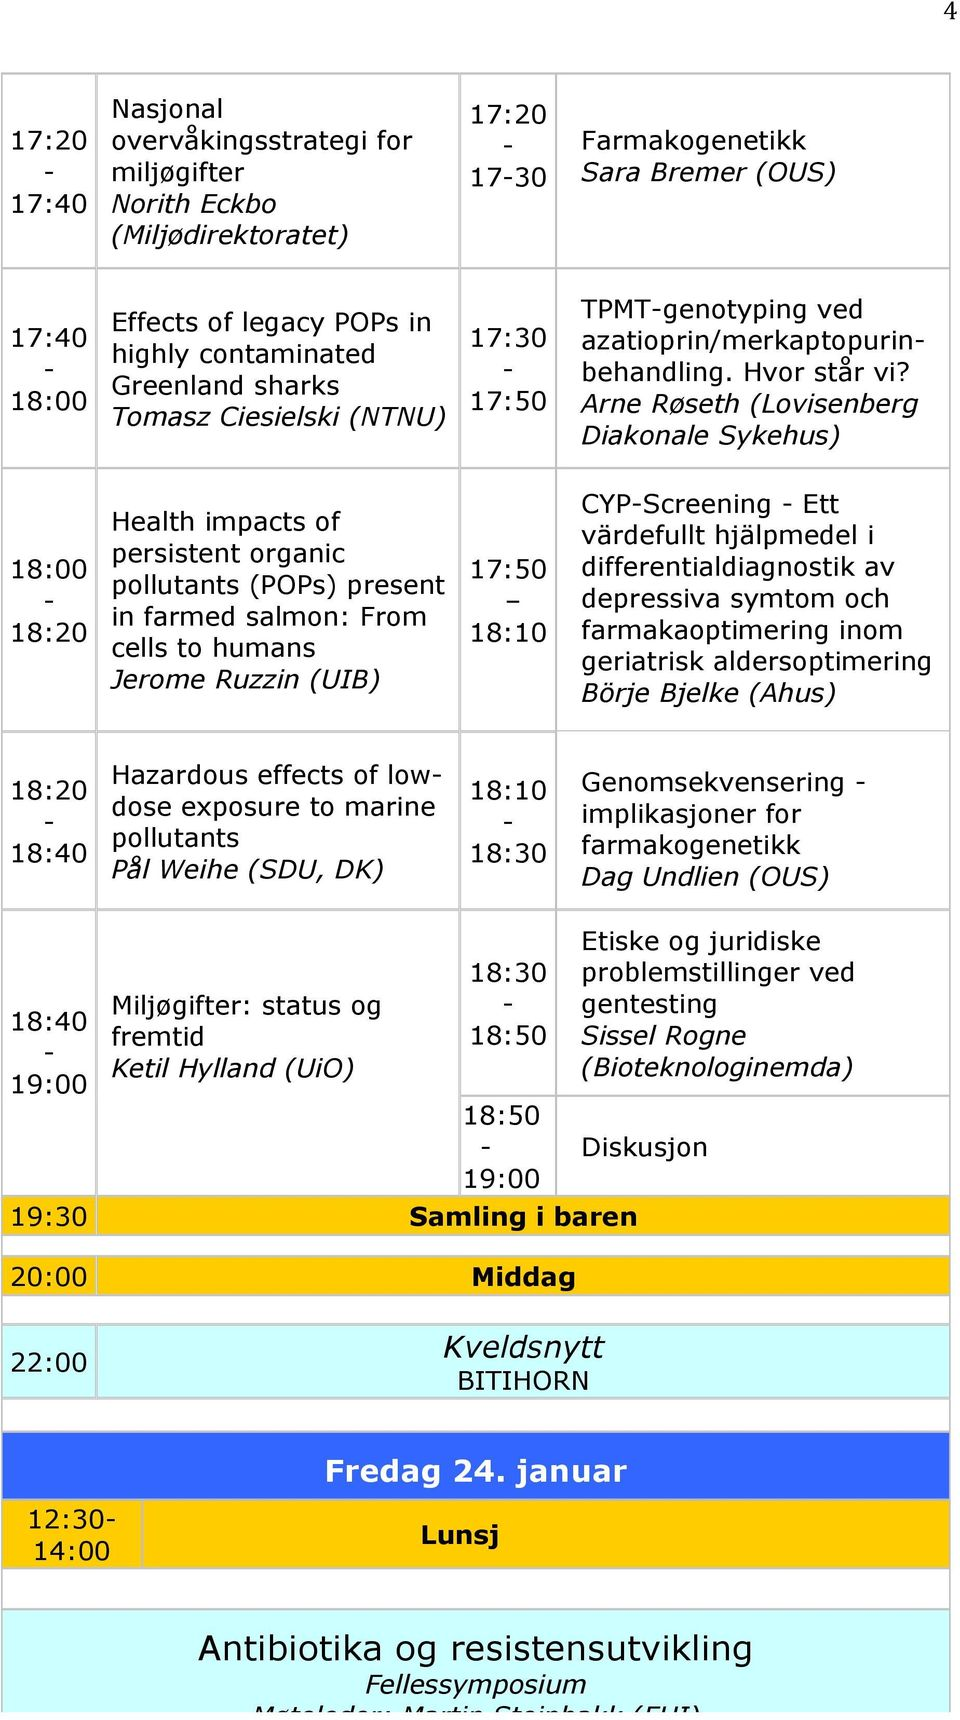 Arne Røseth (Lovisenberg Diakonale Sykehus) 18:00 18:20 Health impacts of persistent organic pollutants (POPs) present in farmed salmon: From cells to humans Jerome Ruzzin (UIB) 17:50 18:10